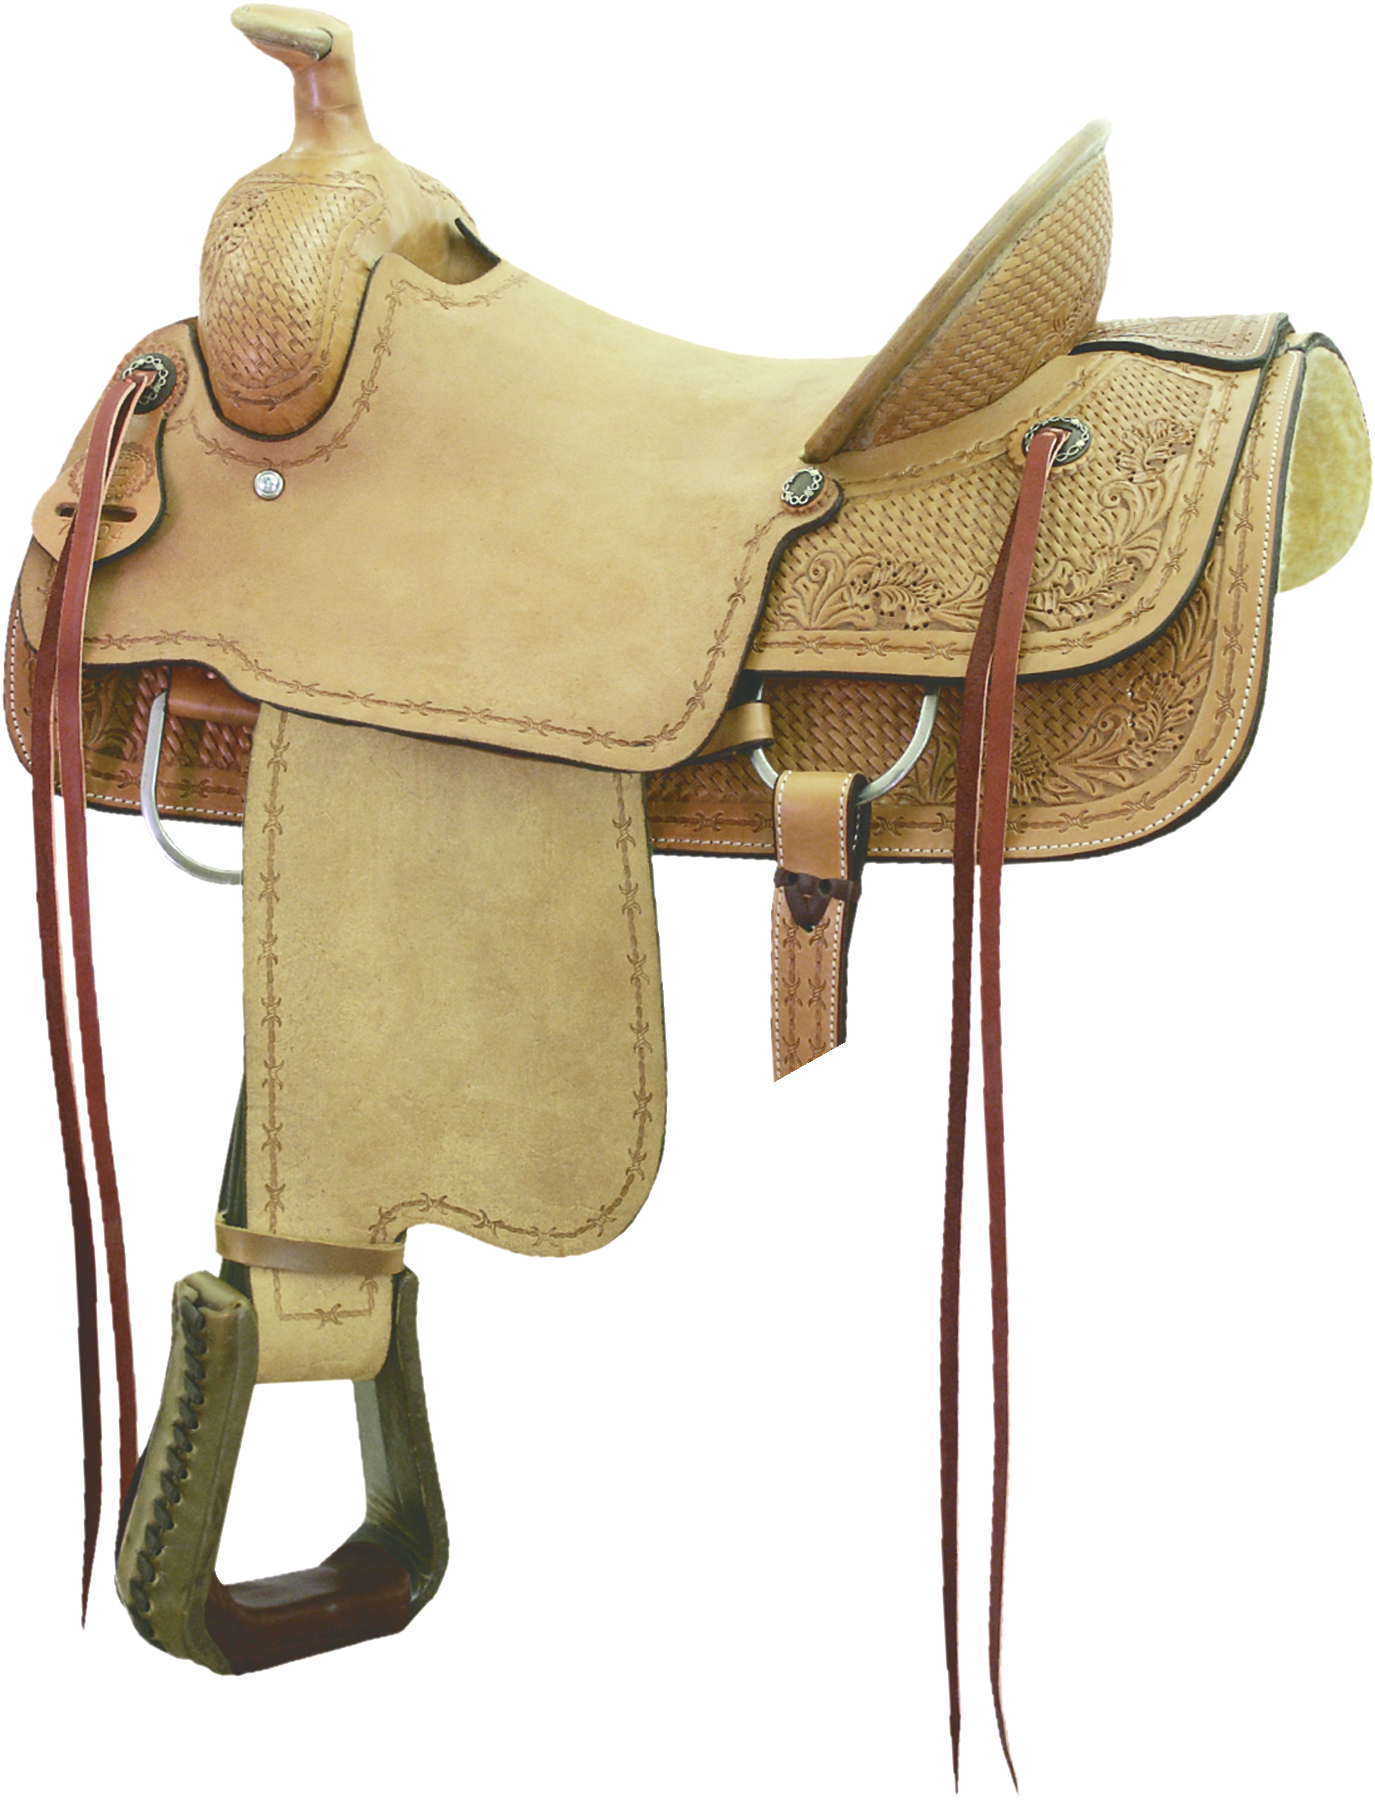 Billy Cook Saddlery Roanoke Rancher